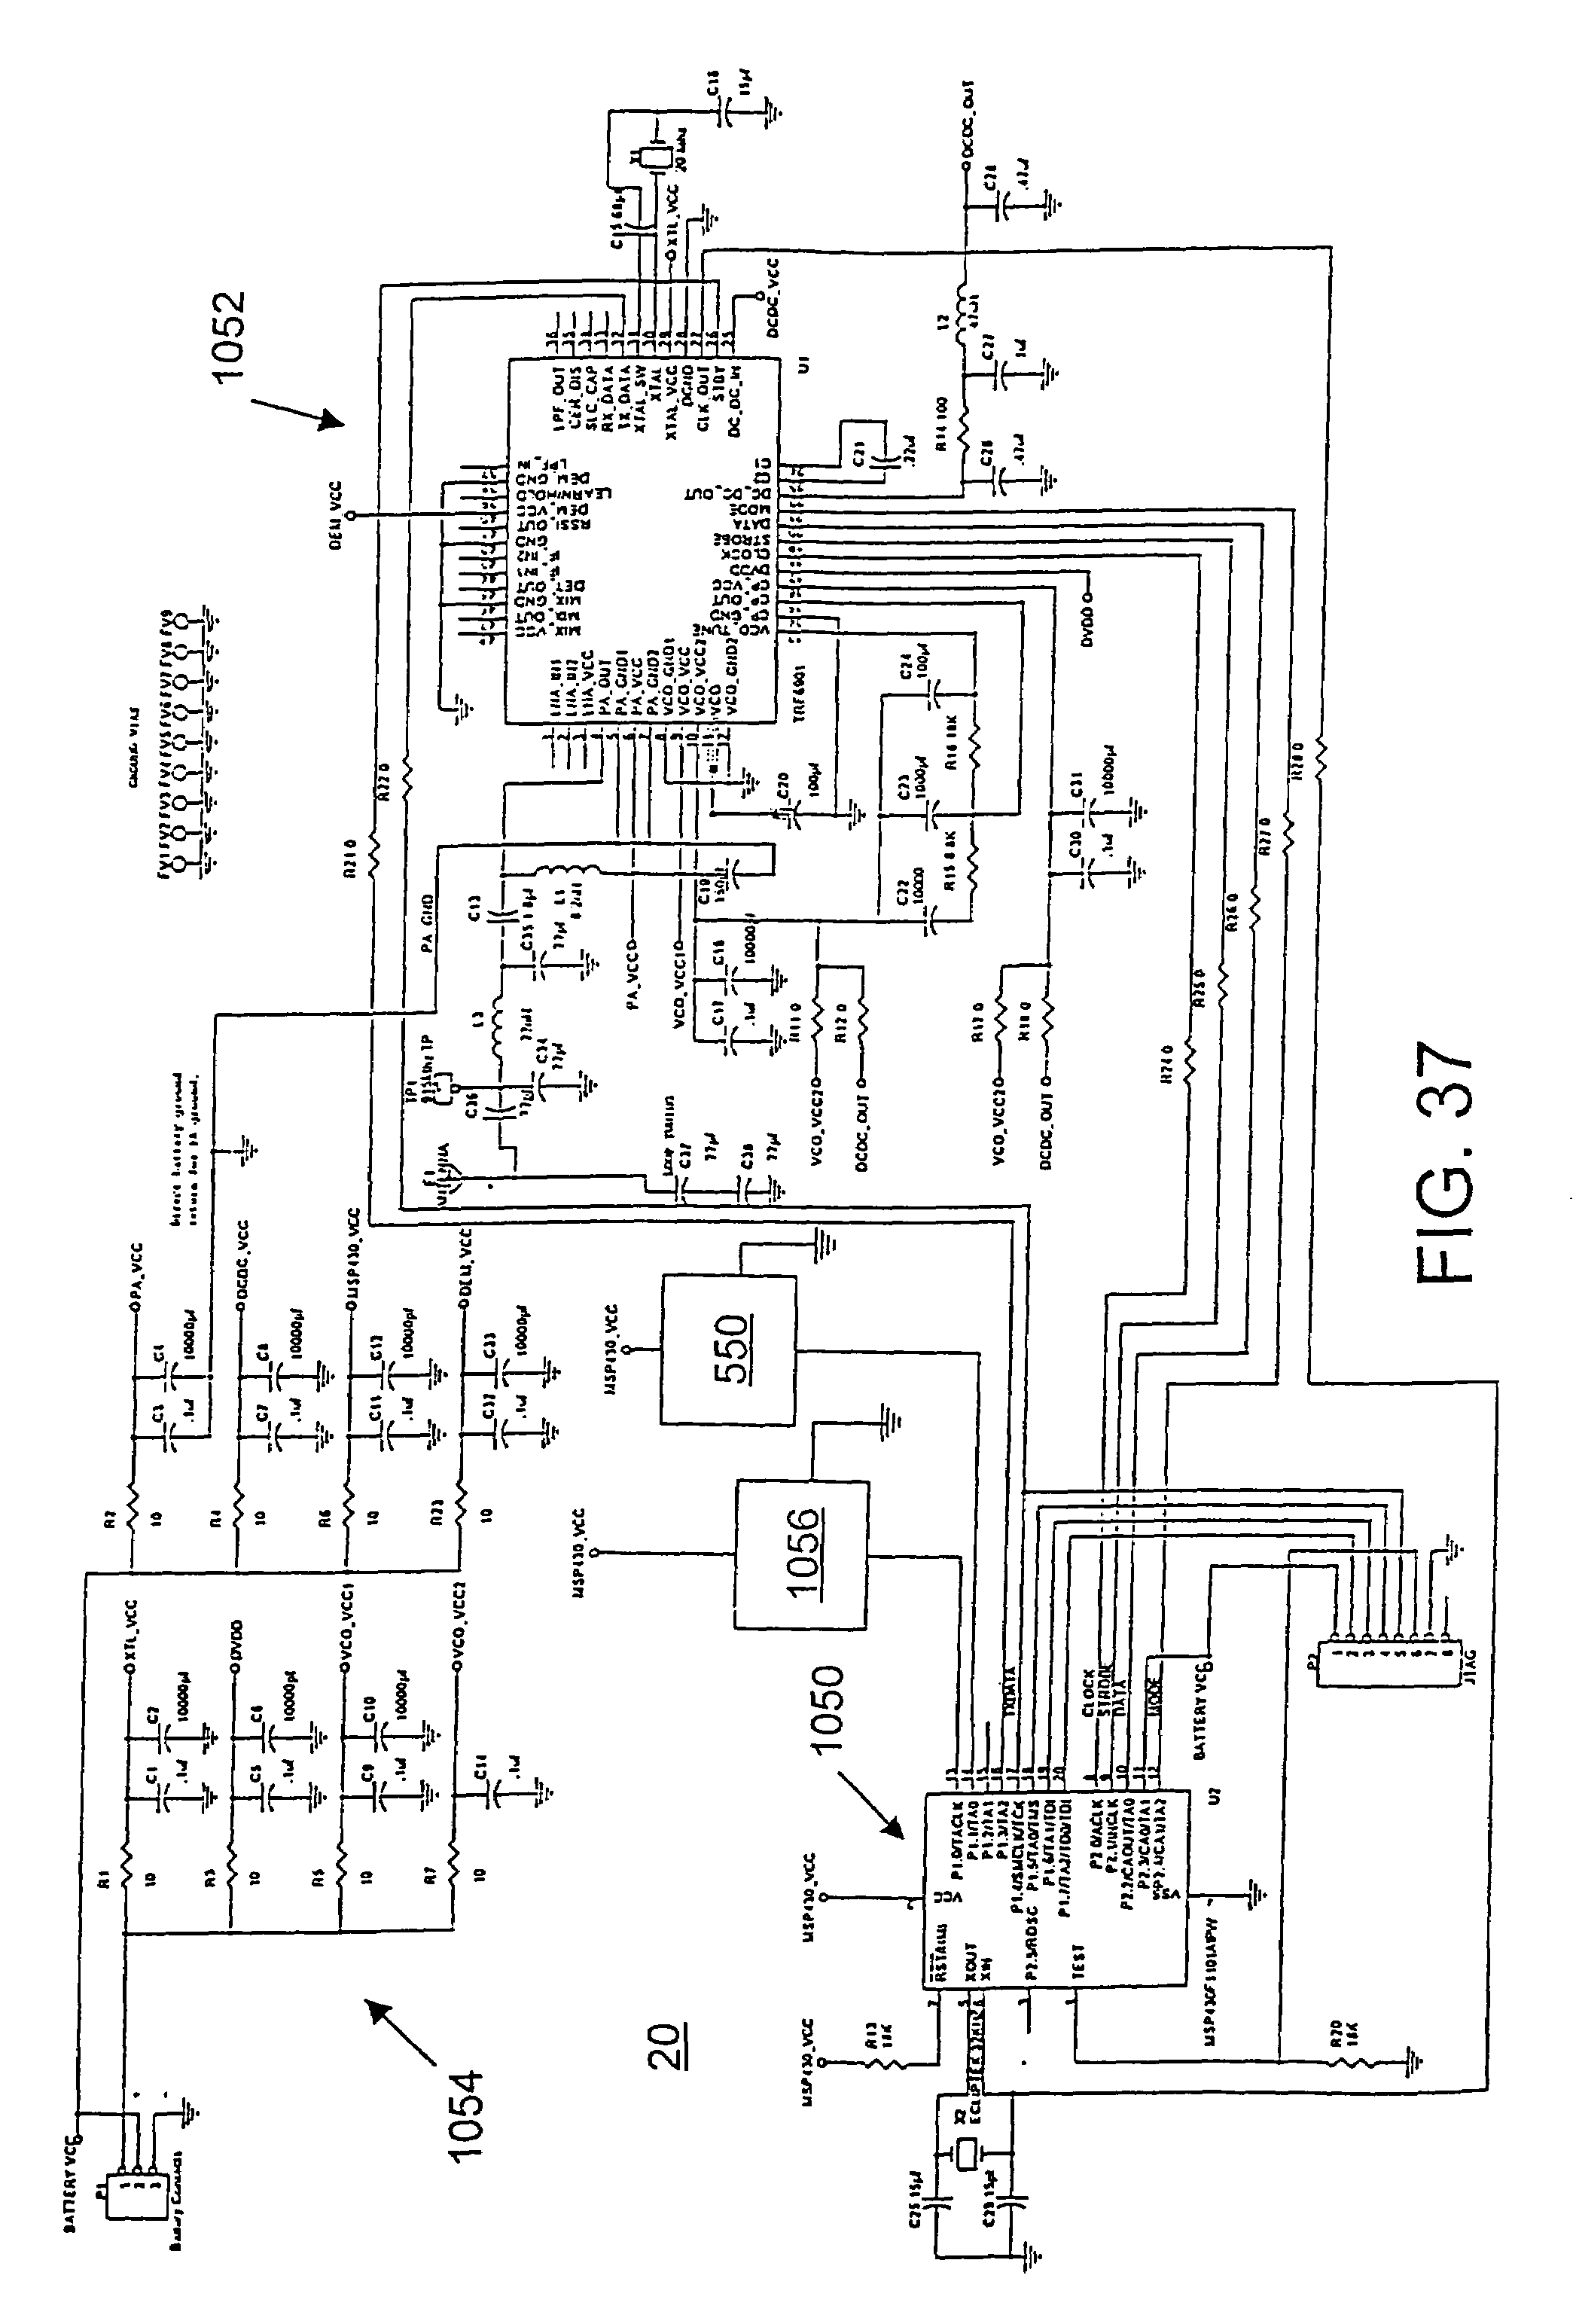 Patent Us 7113091 B2 Make A Simple Ic 741 Smoke Detector Circuit Schematic Diagram Litigations